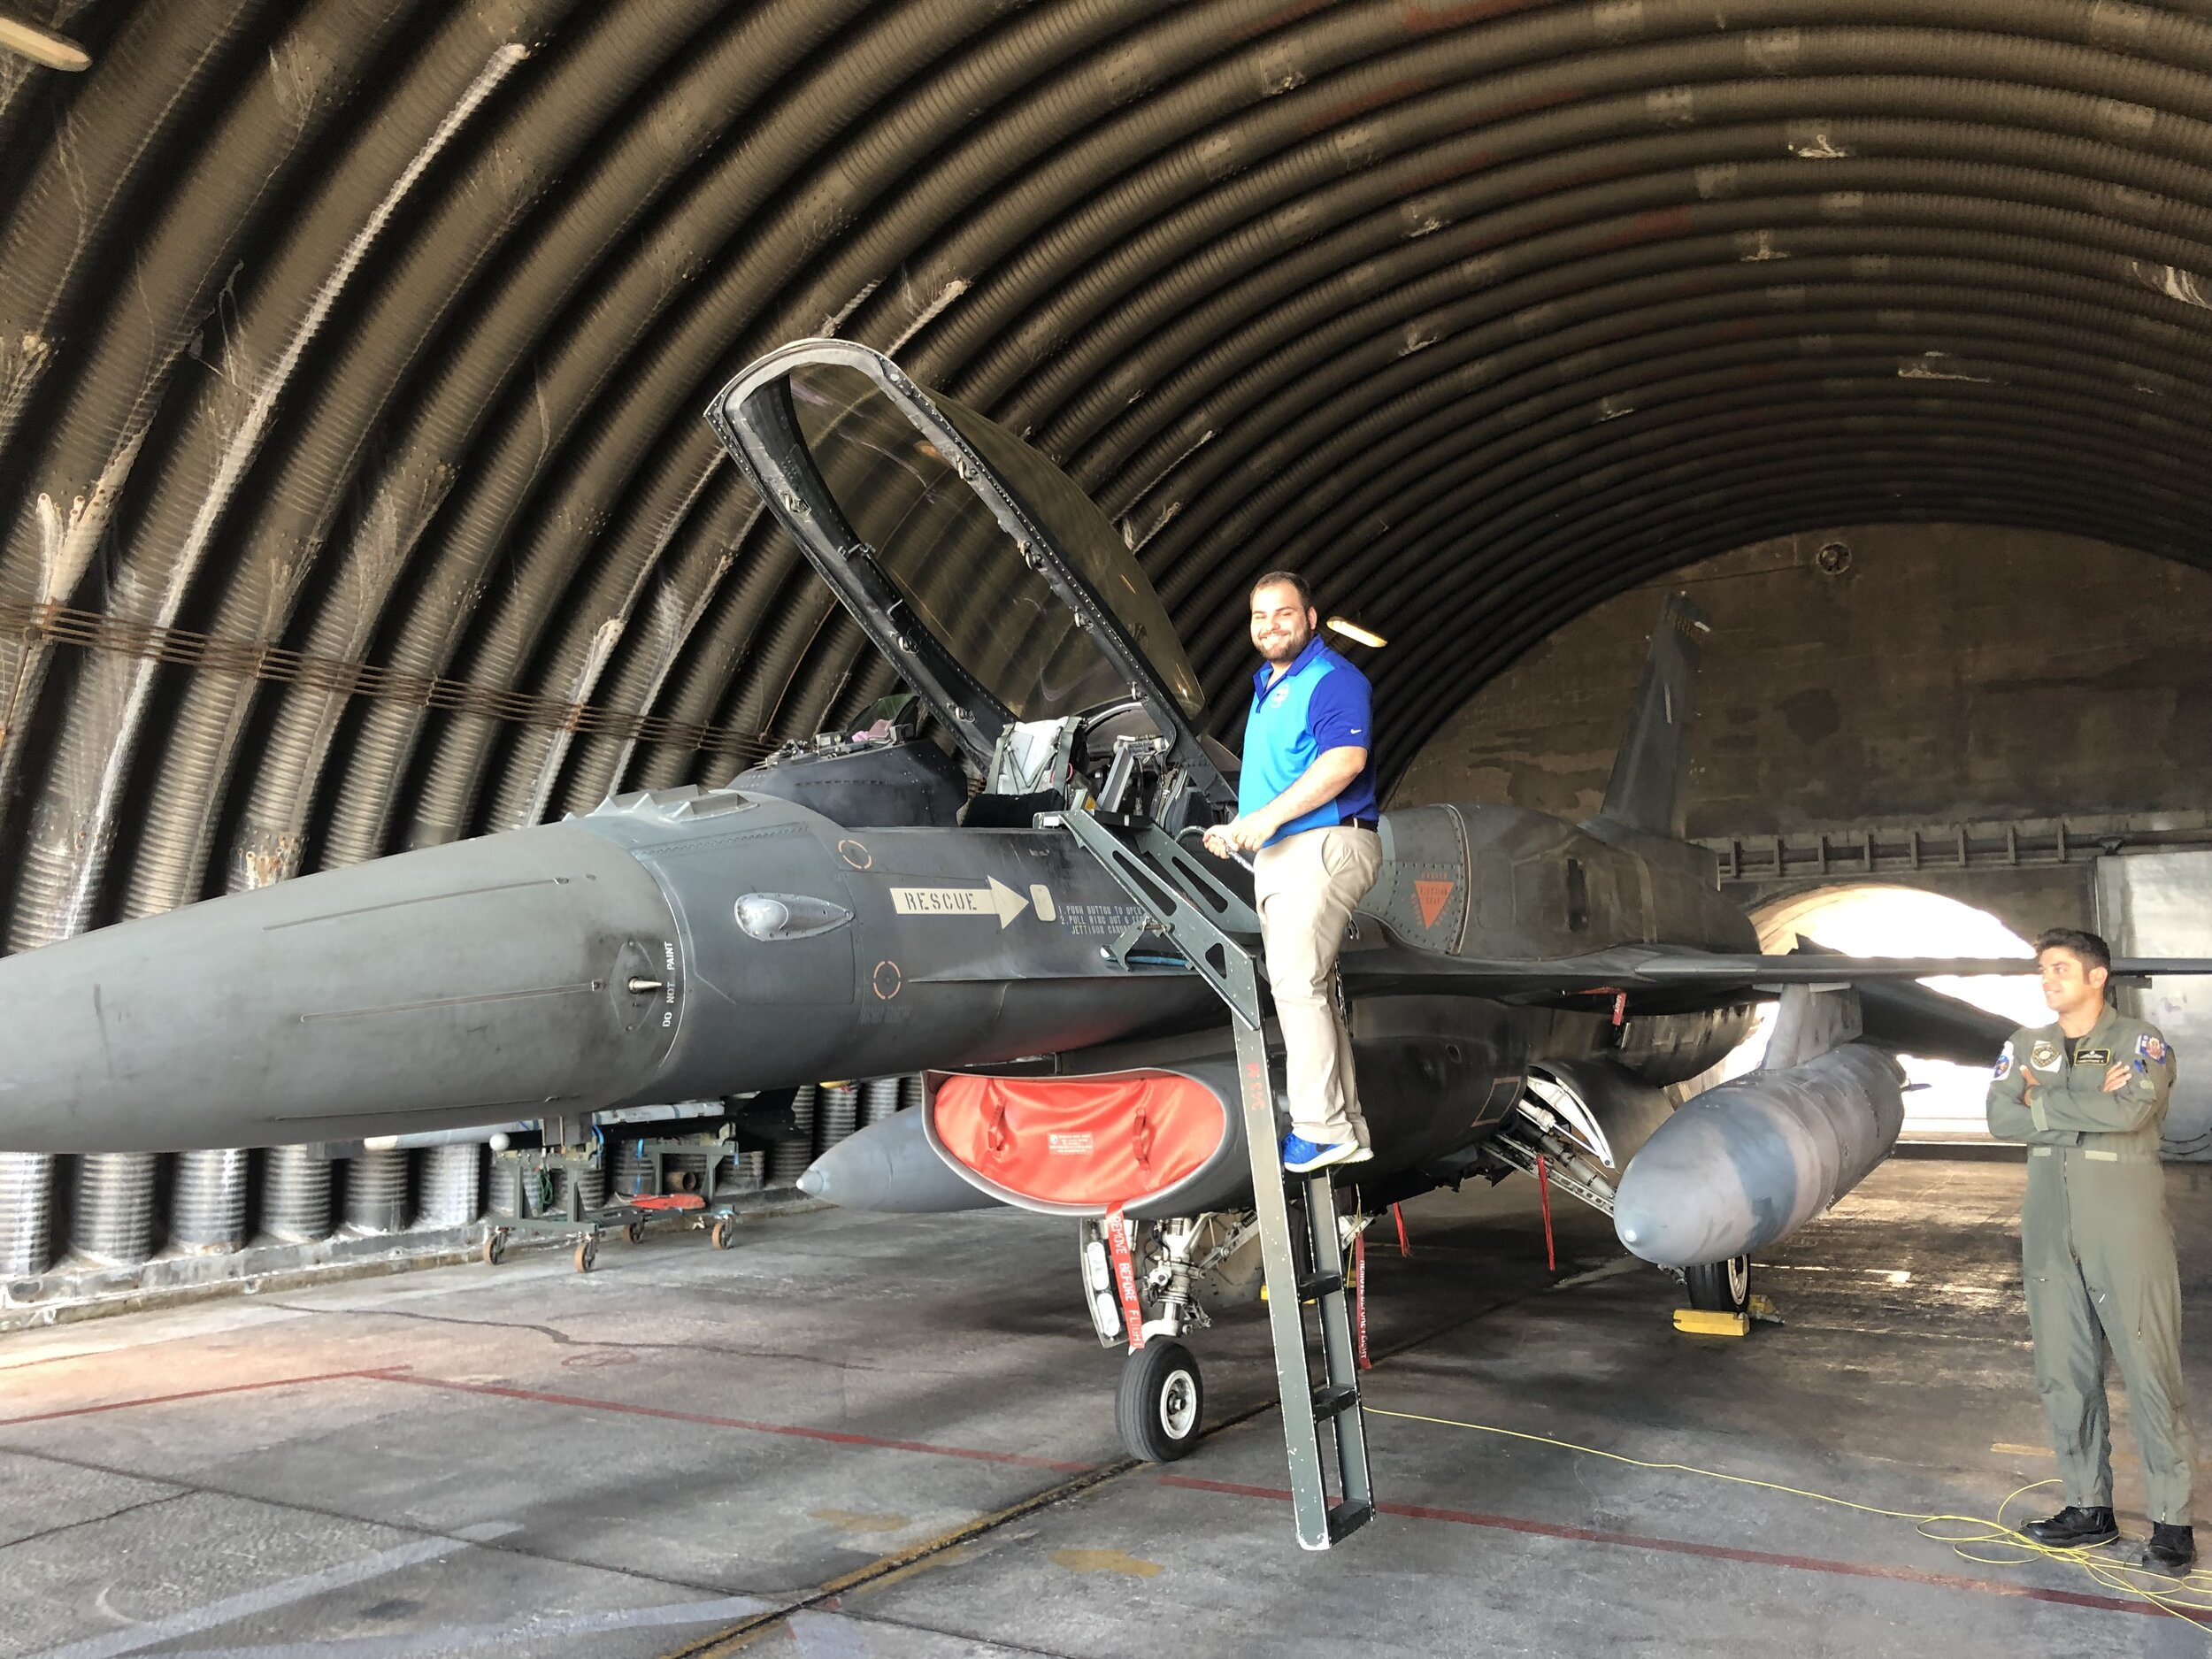 Student Demosthenes Theofanopoulos posing with a F-16